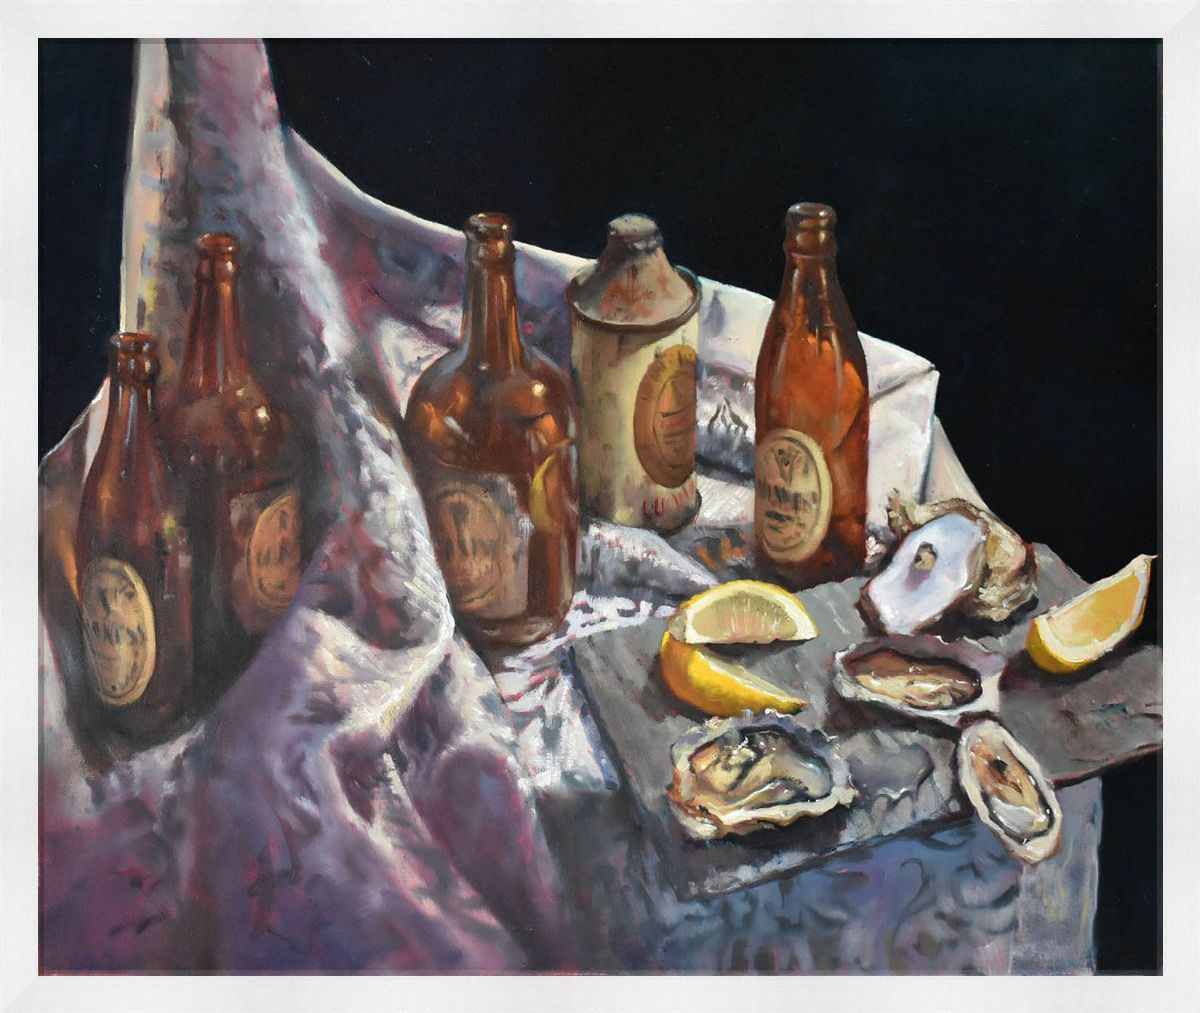 Oysters & Guinness by Dave West